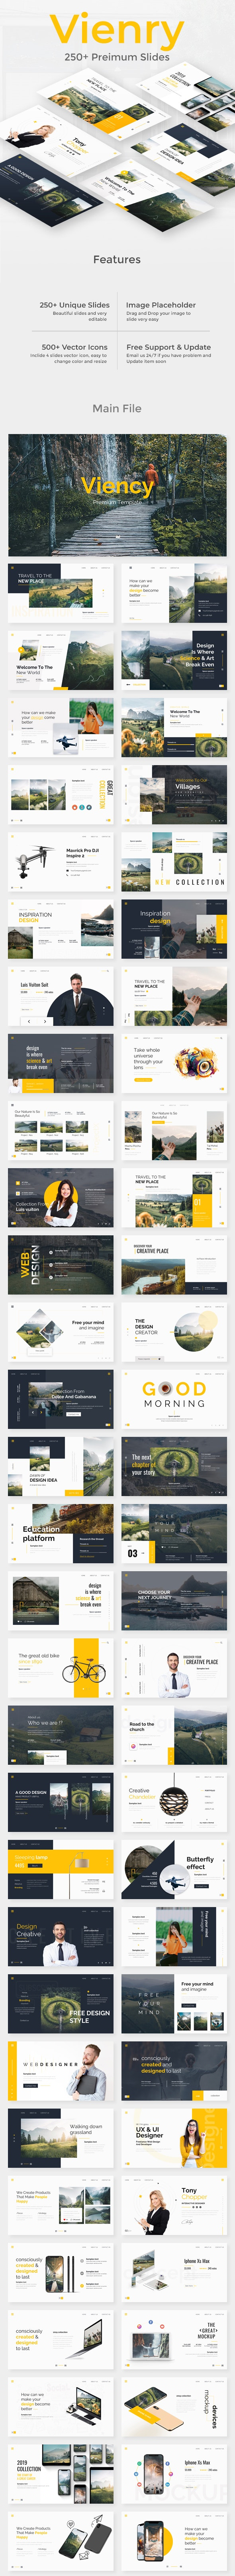 Viency Premium Keynote Template - Creative Keynote Templates